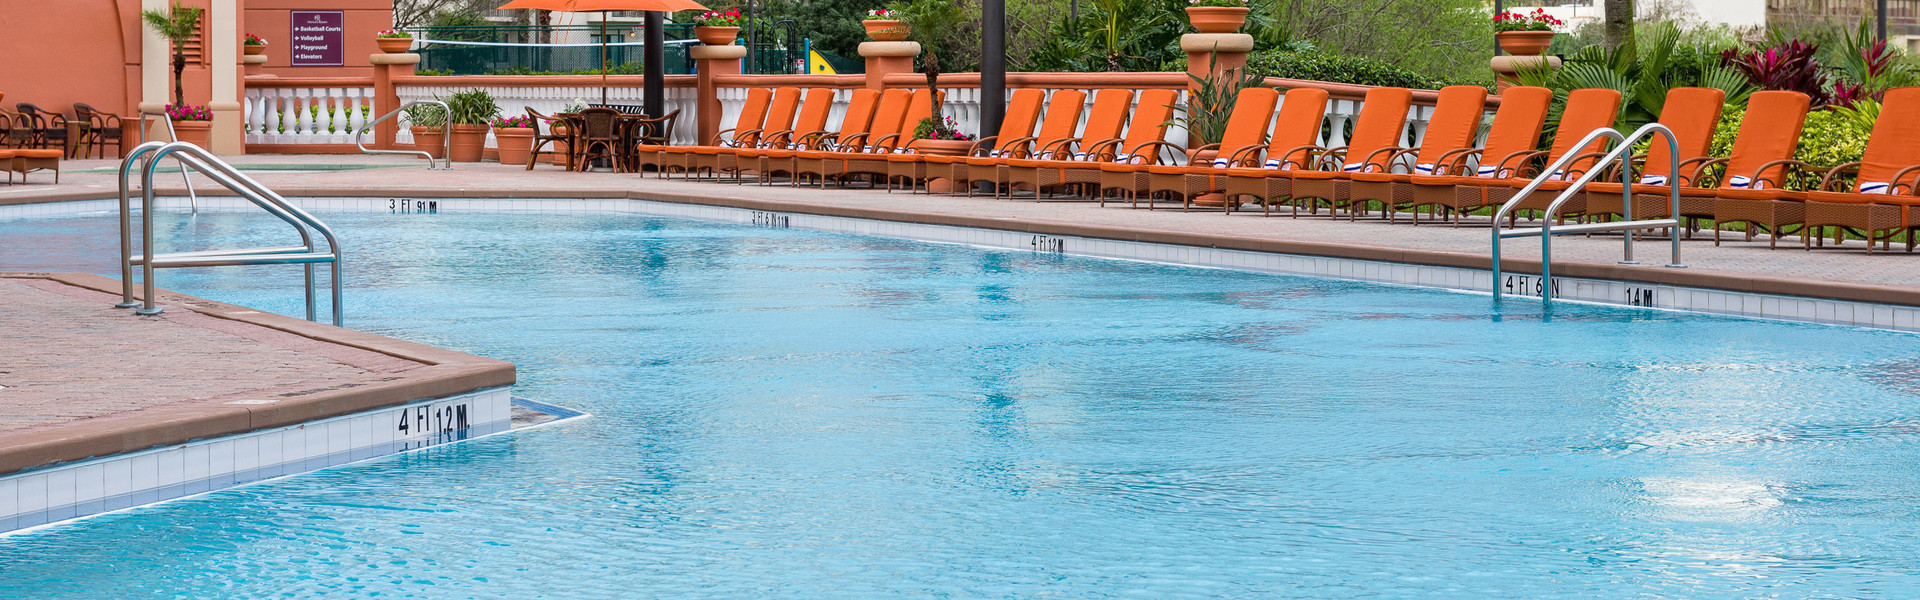 Poolside After Getting Direct Hotel Discounts | Westgate Palace Orlando | Discounts For Hotels on International Drive, Orlando, Florida 32819